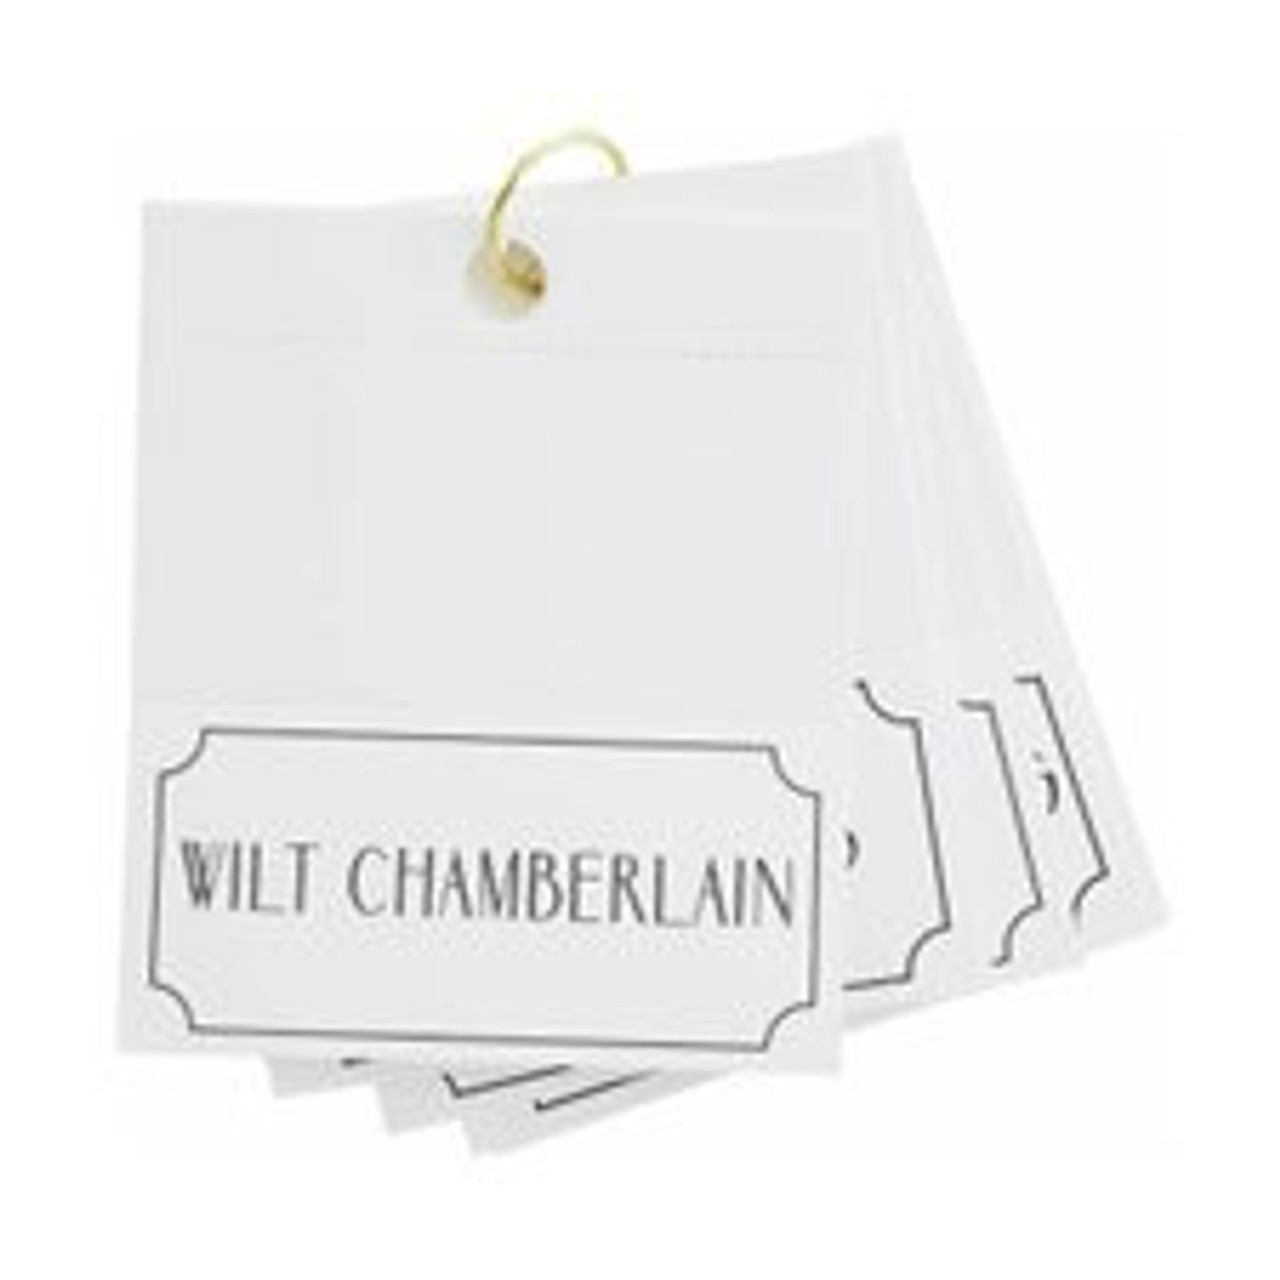 """Bring some laughs and a championship feeling to your next dinner party with a set of male athlete place cards. Folded cards measure 2 3/8"""" H x 4 3/4"""" W.  This set of 24 cards features some of the most recognized male athlete names including: Wilt Chamberlain, Magic Johnson, John Elway, Roger Federer, Bo Jackson, LeBron James, Michael Jordan, Dale Earnhardt, Tiger Woods, Shaquille O'Neal, Steph Curry, Sandy Koufax, Pele', Tom Brady, Aaron Rodgers, Kyrie Irving, Stan Musial, Byrce Harper, Babe Ruth, Lance Armstrong, Wayne Gretzky, Michael Phelps, Muhammad Ali, Carl Lewis"""